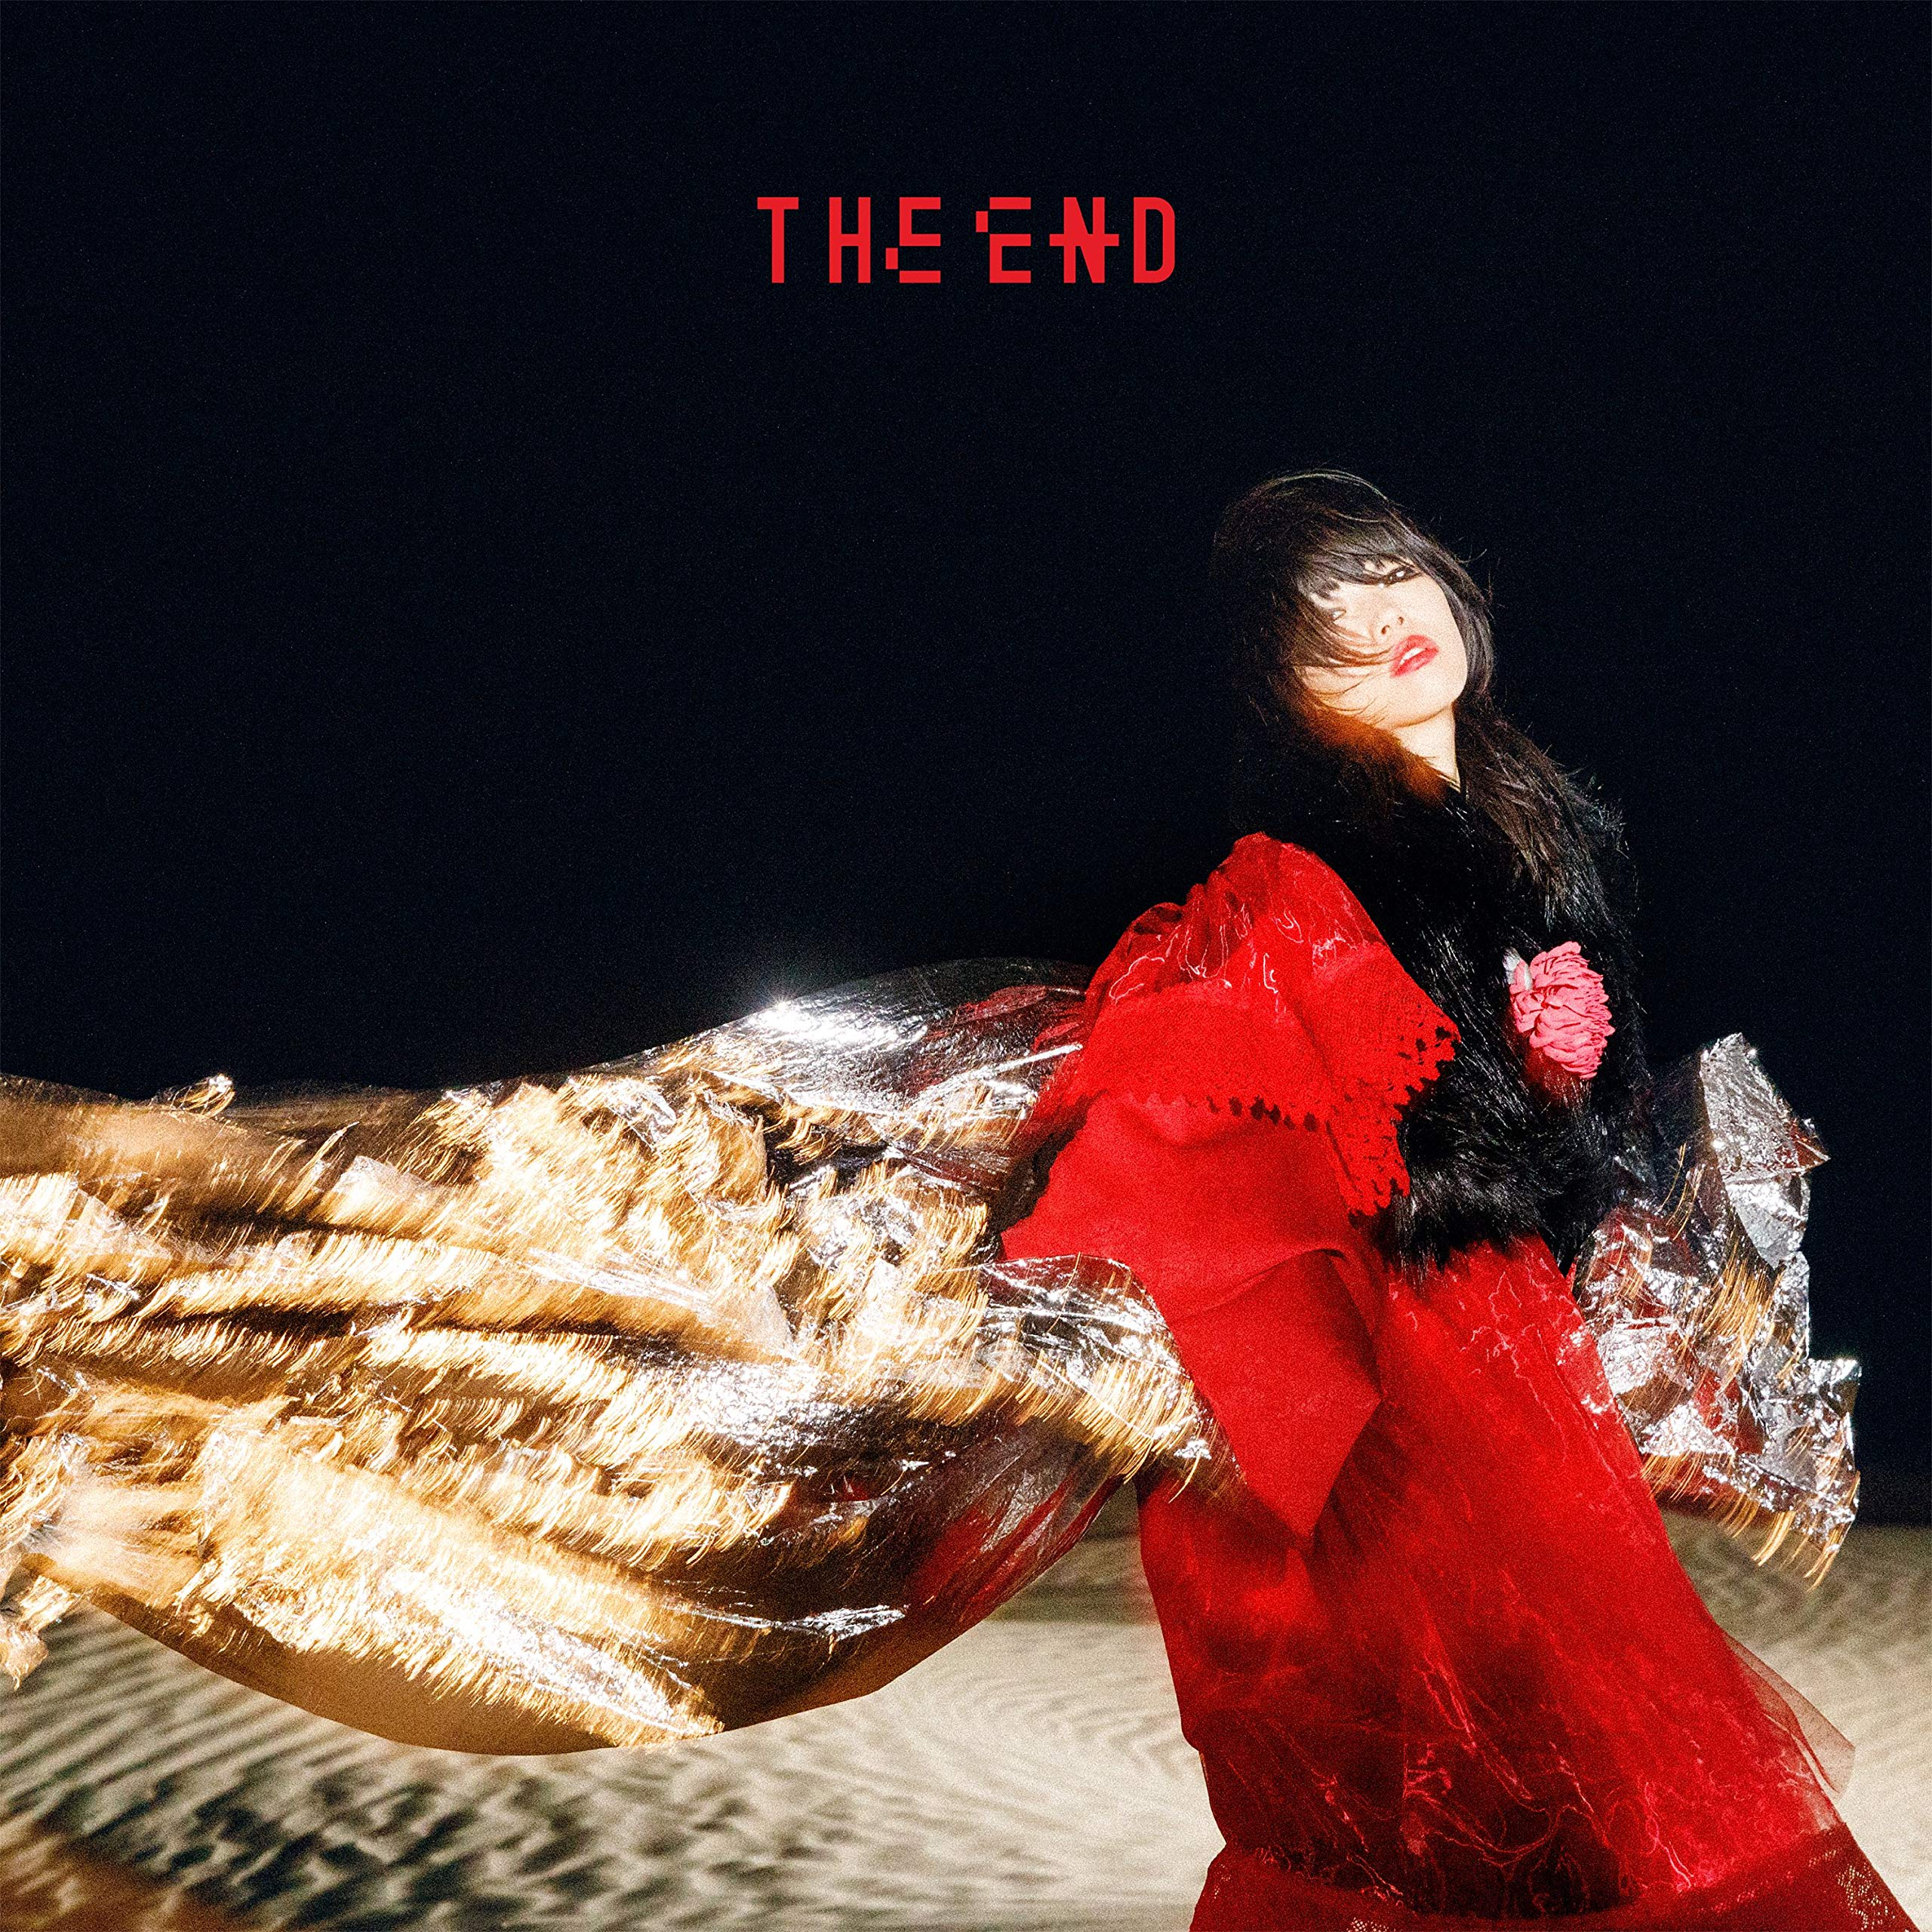 アイナ・ジ・エンド (Aina The End) – THE END [FLAC / 24bit Lossless / WEB] [2021.02.03]